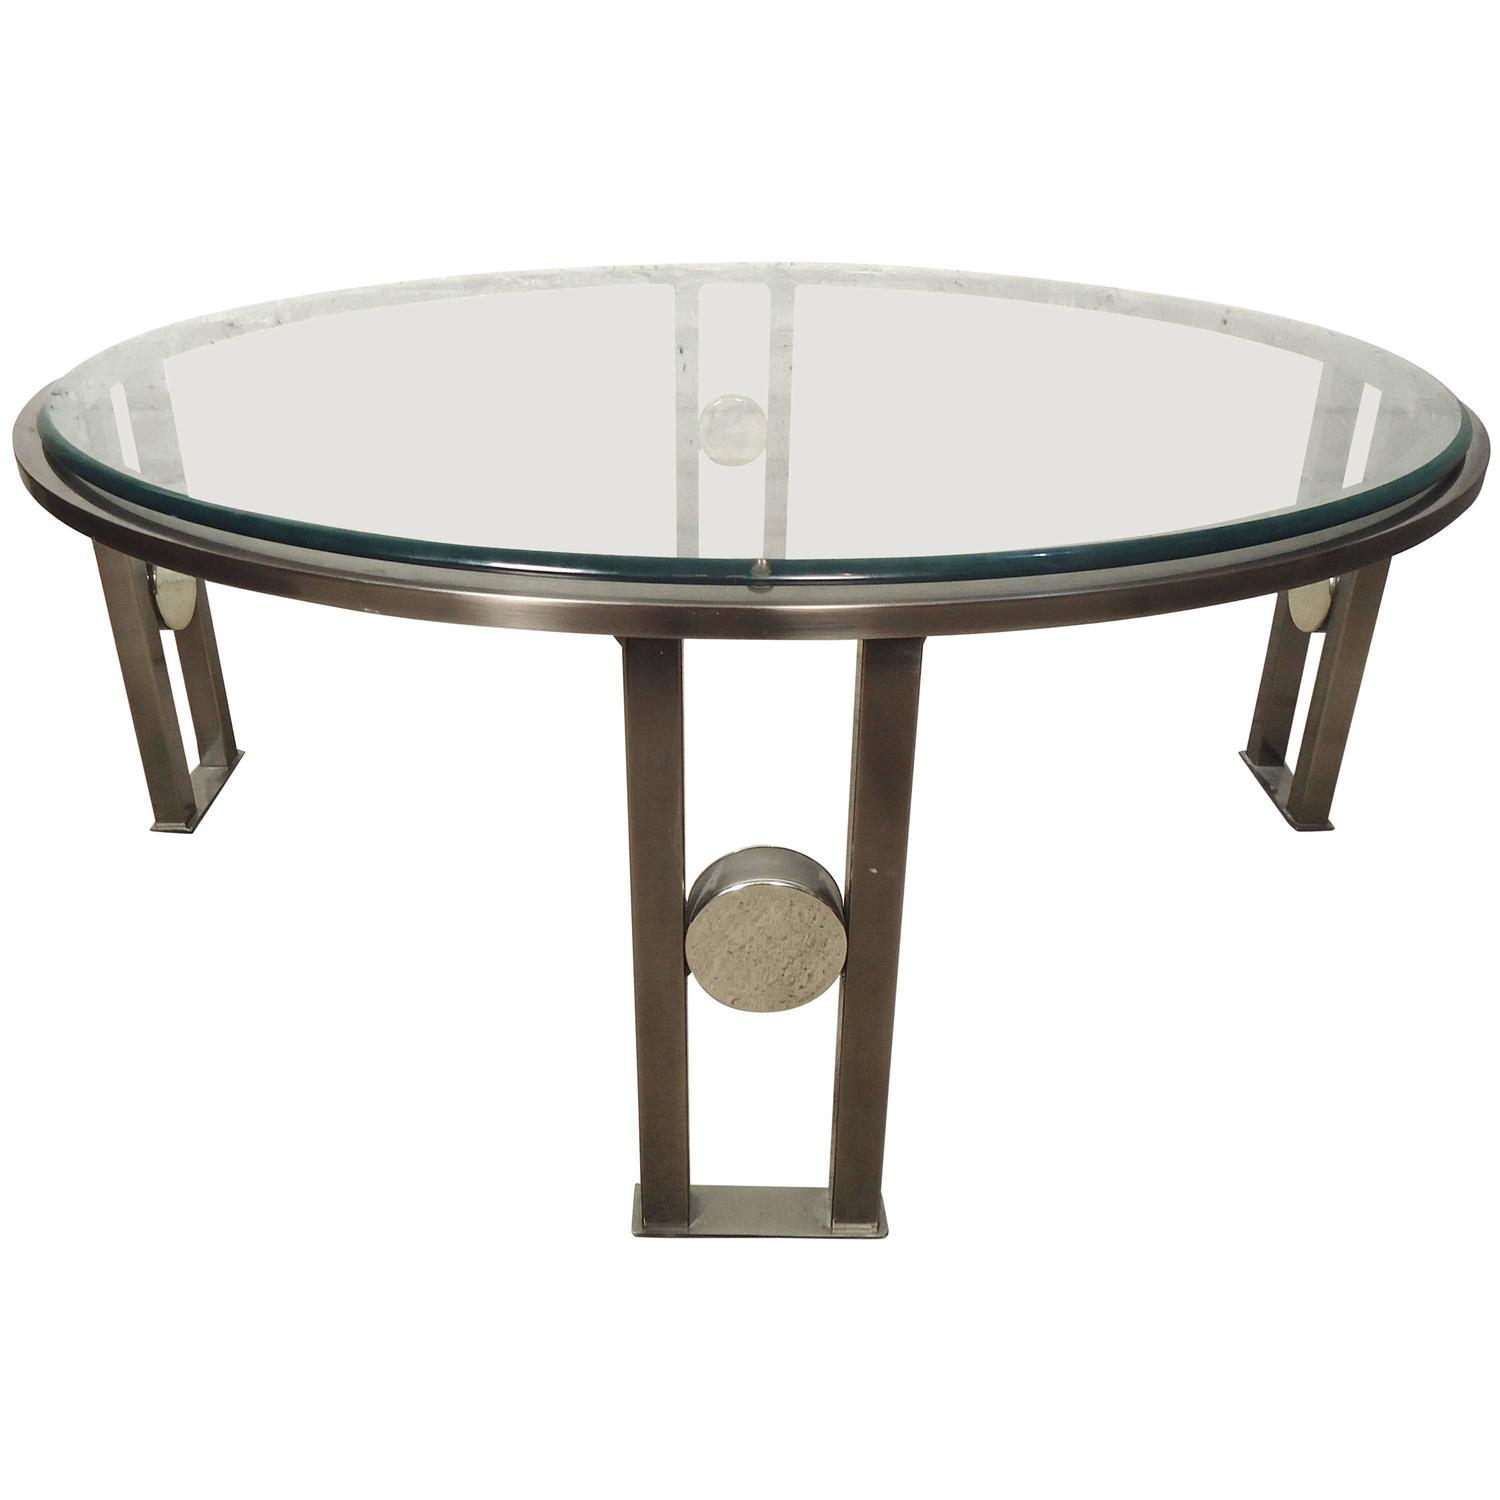 Round glass top coffee table at 1stdibs coffee table glass Round glass table top